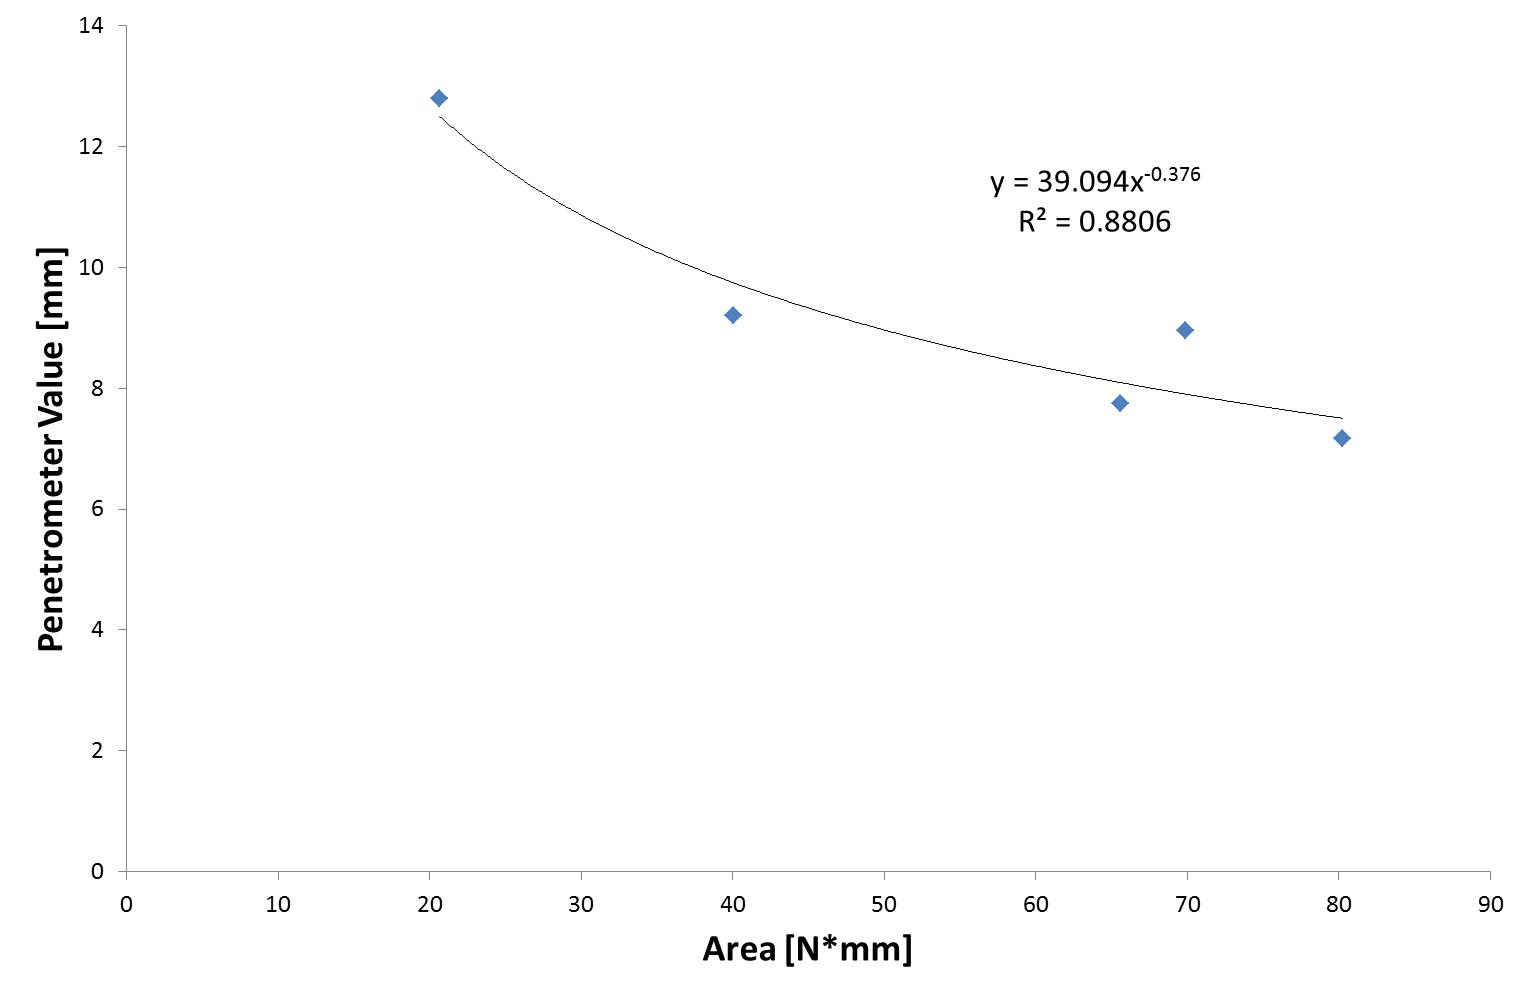 Figure 4. Power-fit correlation between penetrometer values at 10s and area for 3mm cylinder penetration method